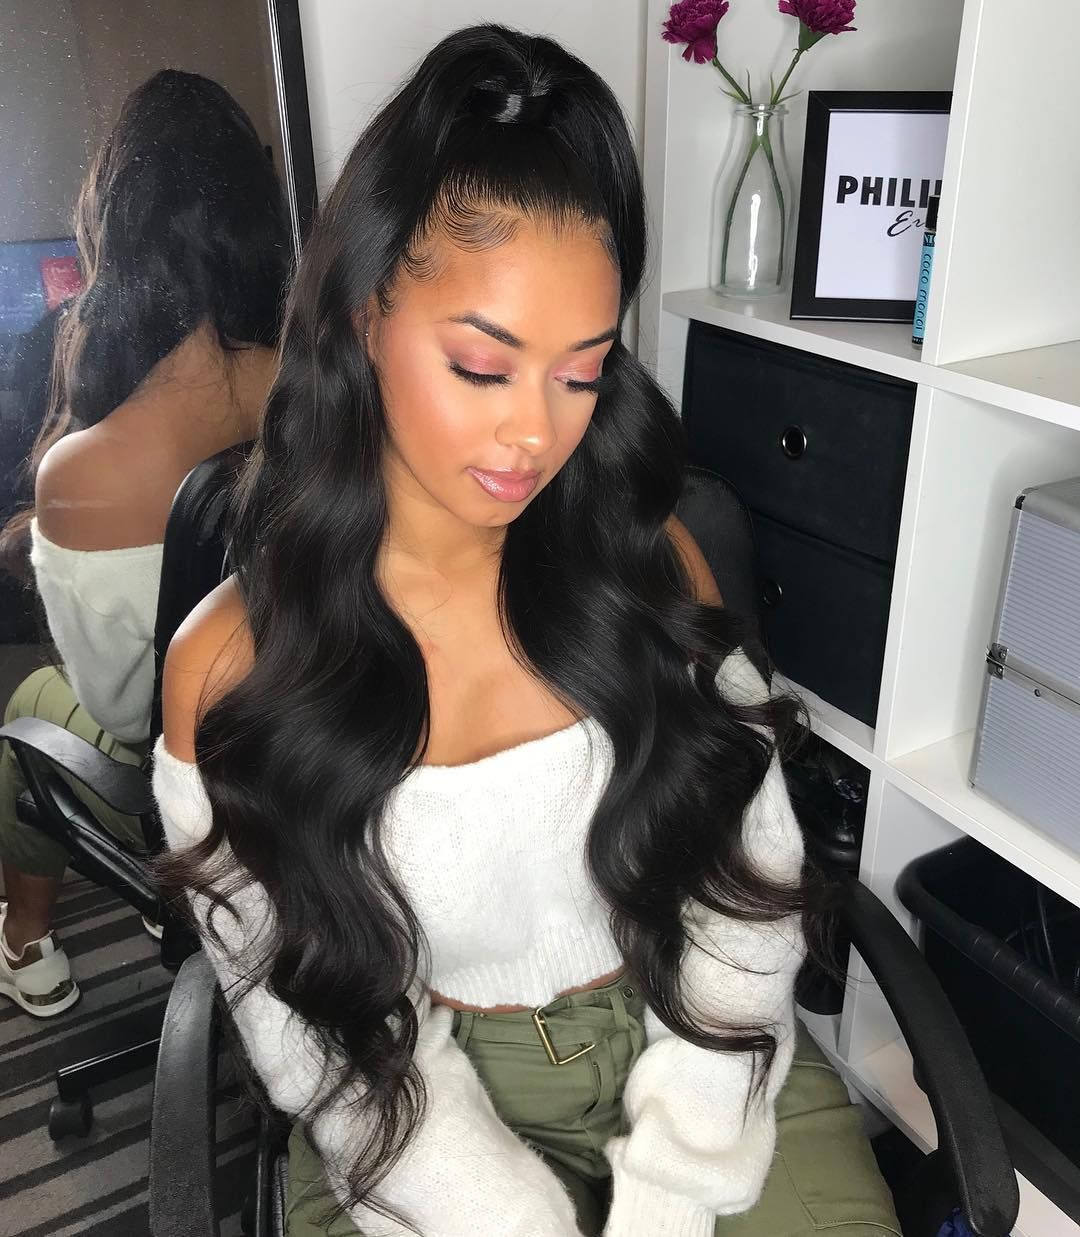 Philiperichair On Instagram Half Up Half Down Slay For Sashaellese Using 26 X4 From Hairess Hair Styles Body Wave Weave Hairstyles Hair Waves